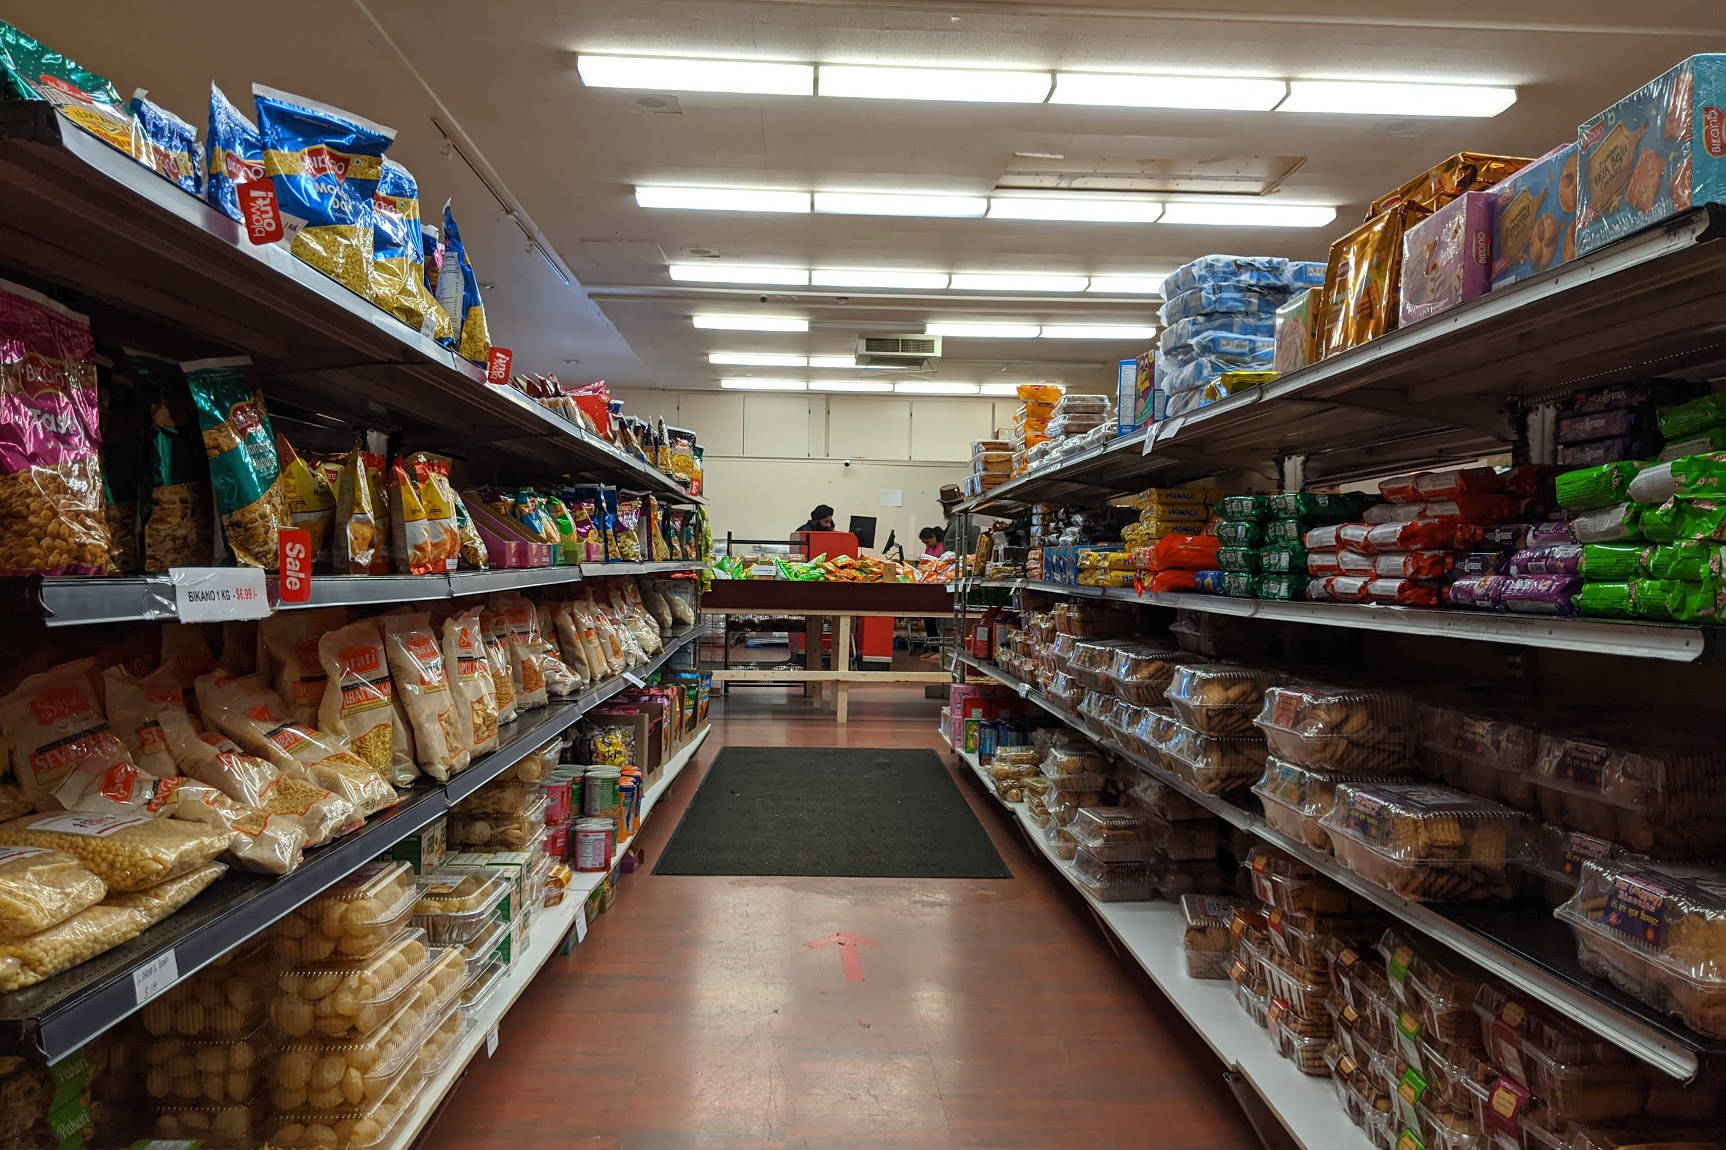 Maharajah Grocerz carries foods from many different South Asian countries, as well as North American staples. (Jesse Day - Western News)